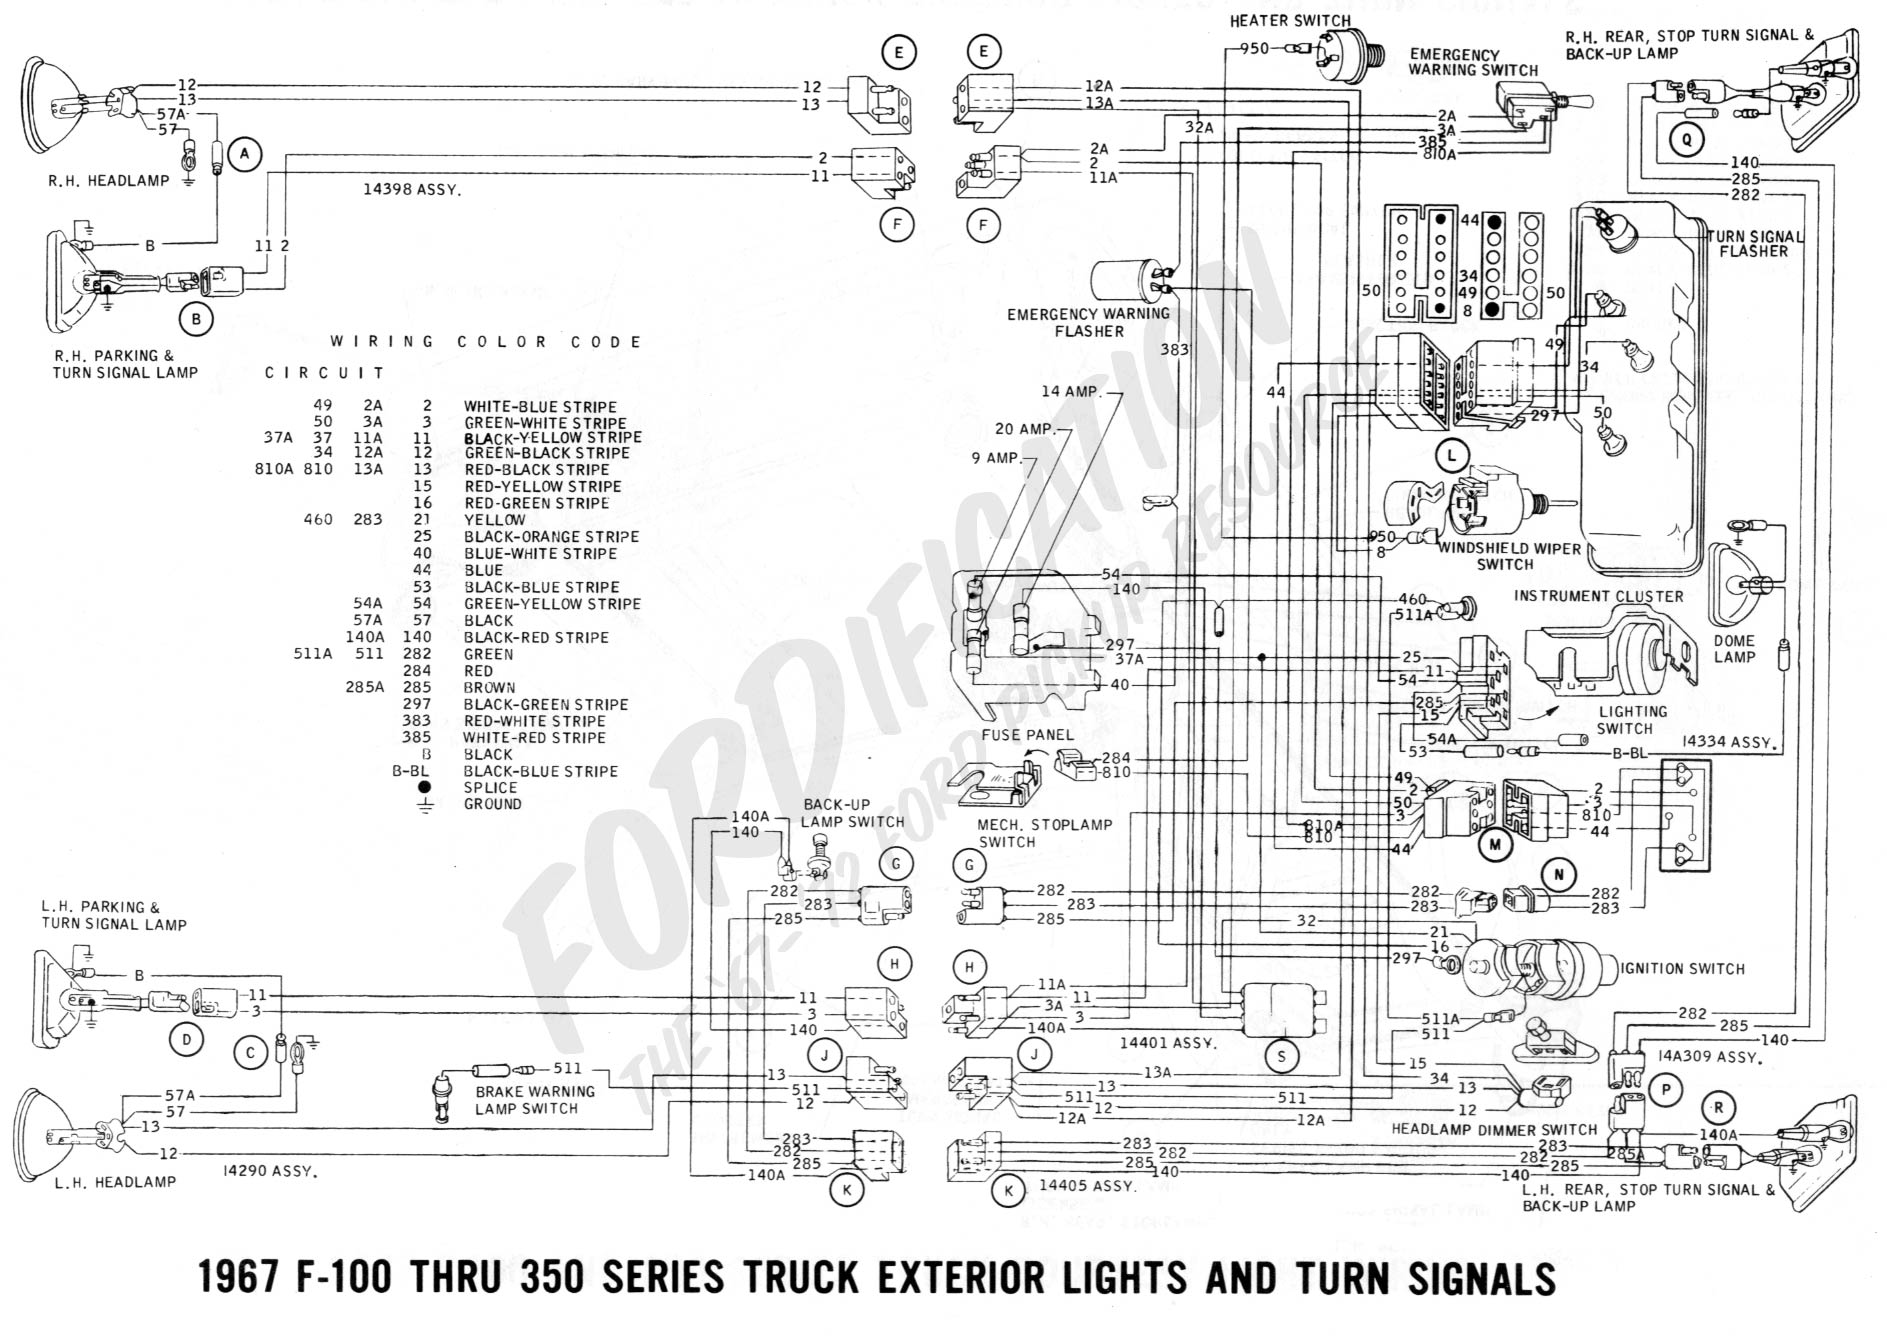 1976 f250 wiring diagram printable wiring diagram 1979 ford f-250 wiring diagram 1975 ford truck wiring diagrams #10